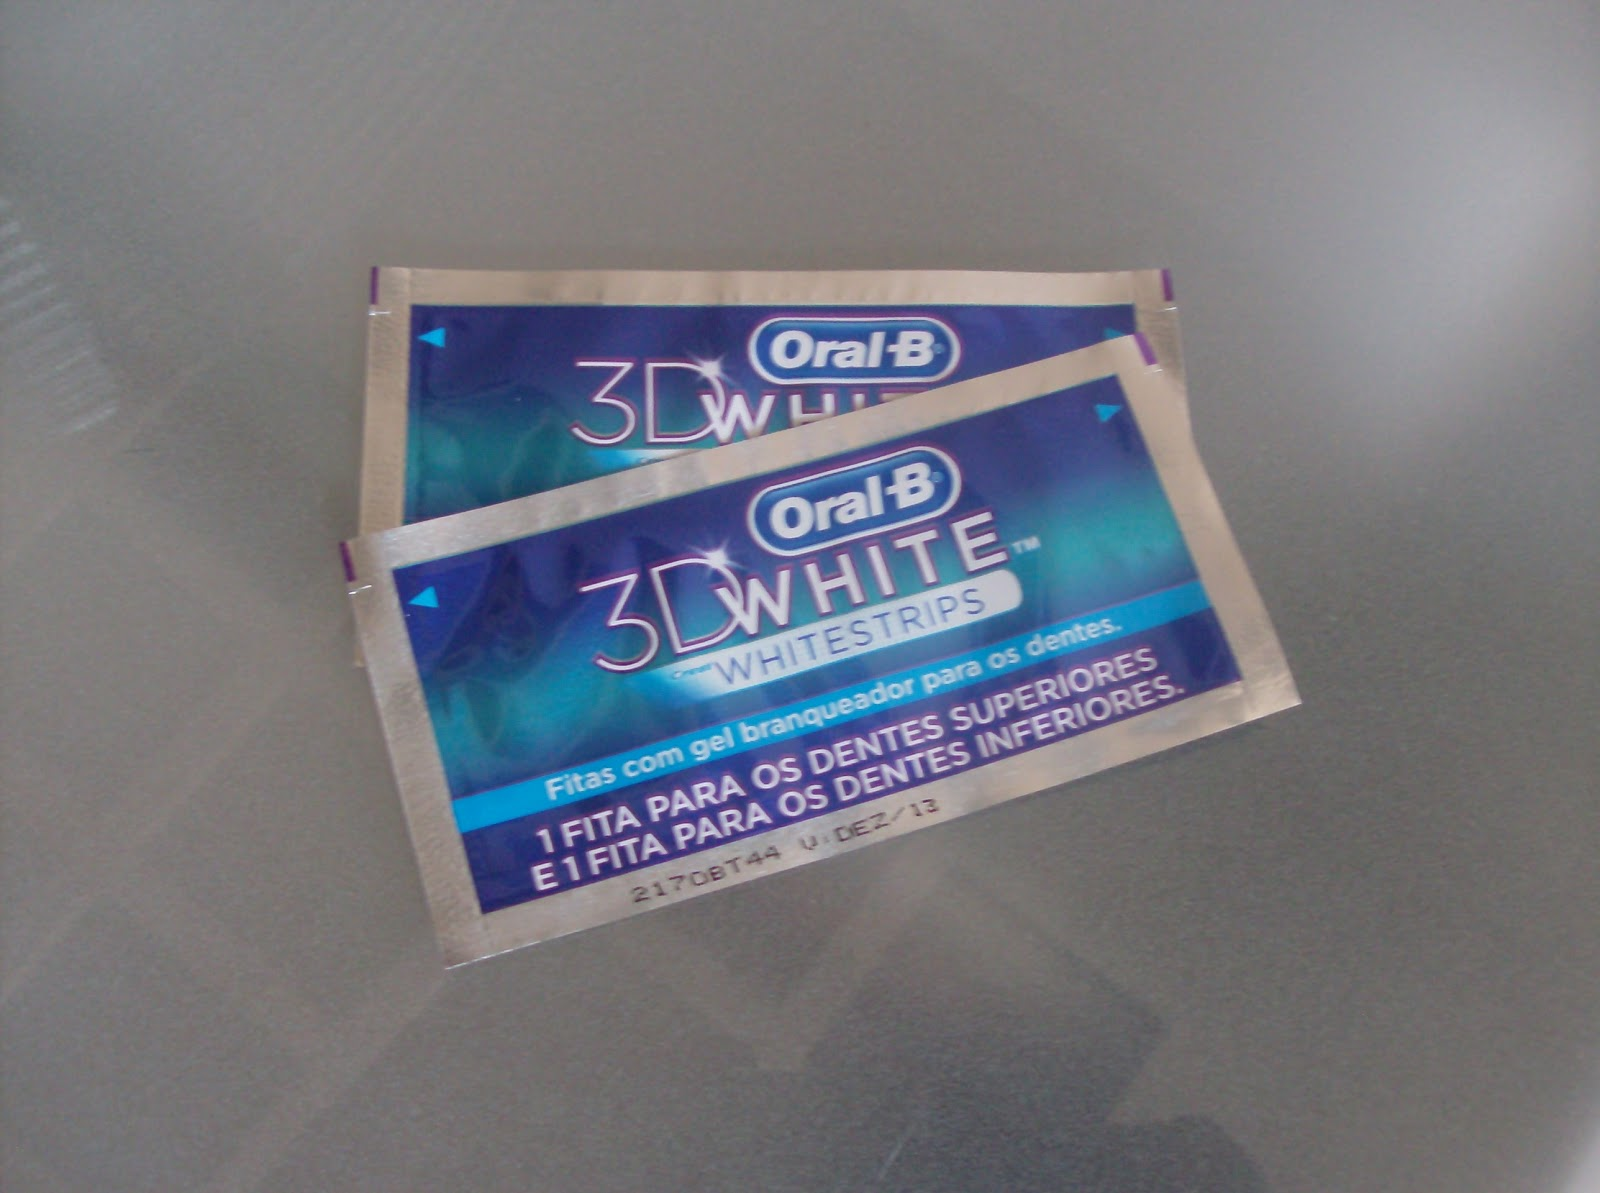 Blog Do Individual Oral B 3d White Strips Vale A Pena